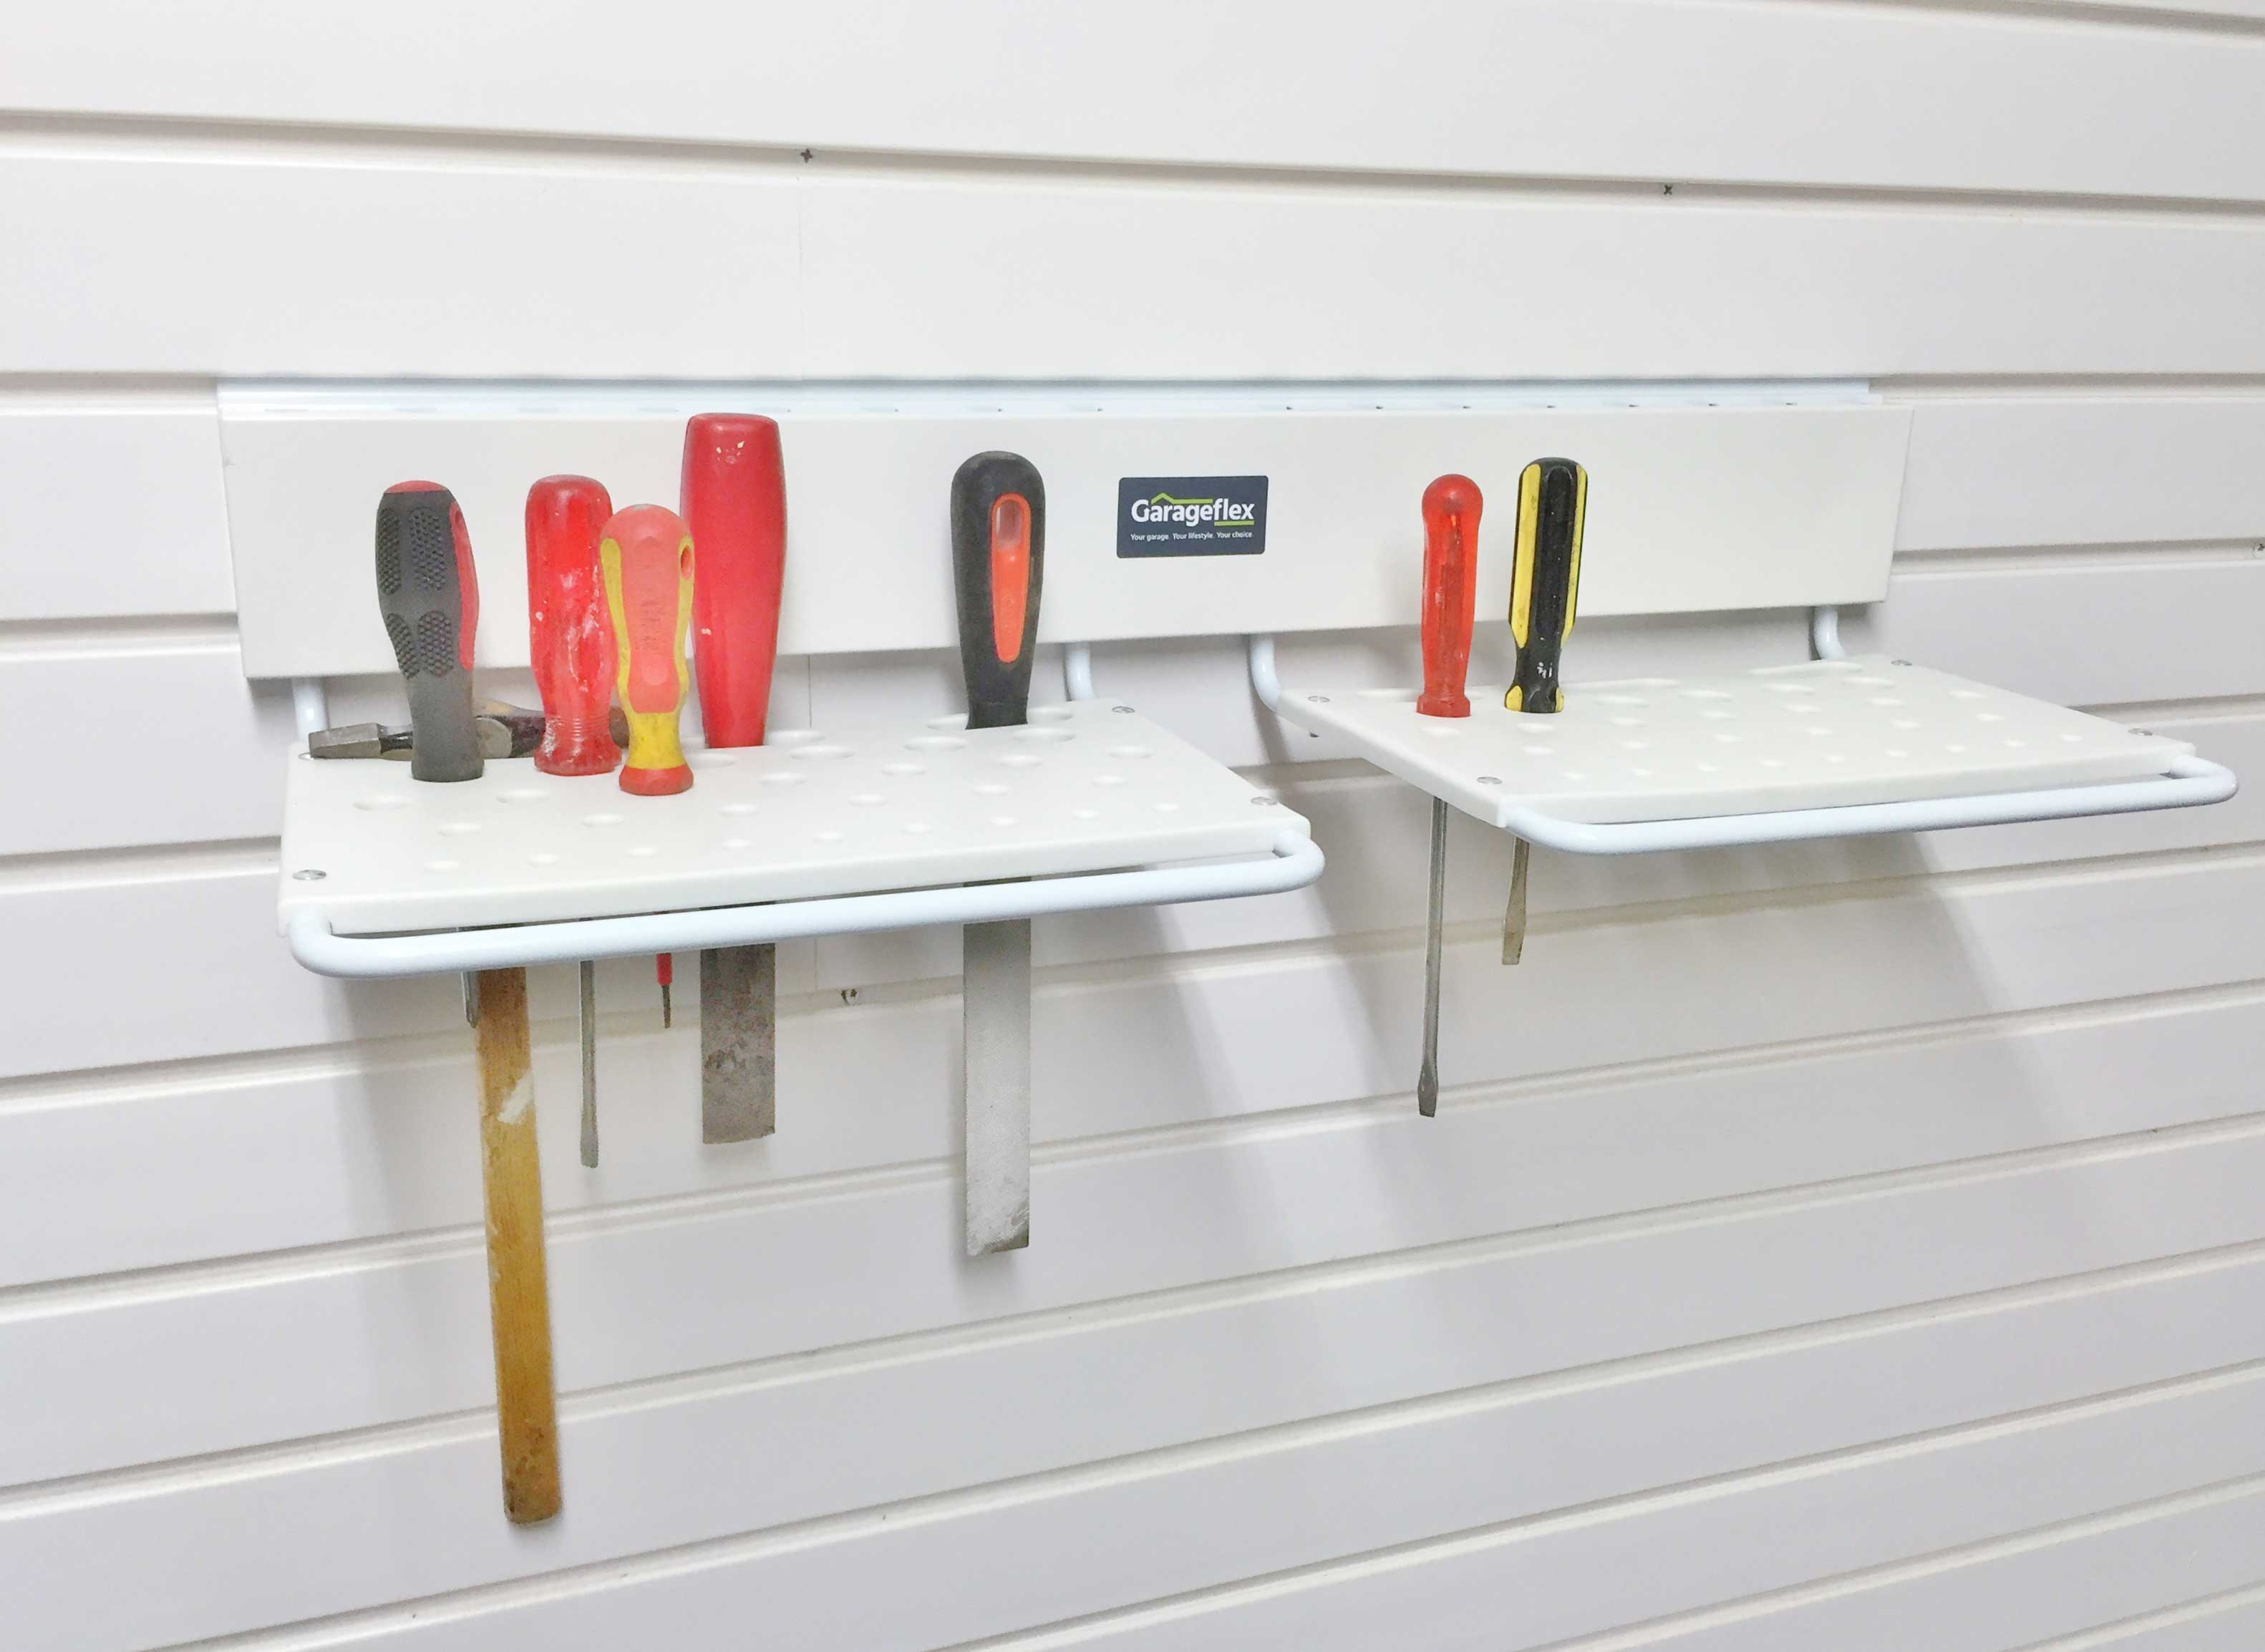 Garage Wall Storage: Tool storage for your garage wall for storing small hand tools